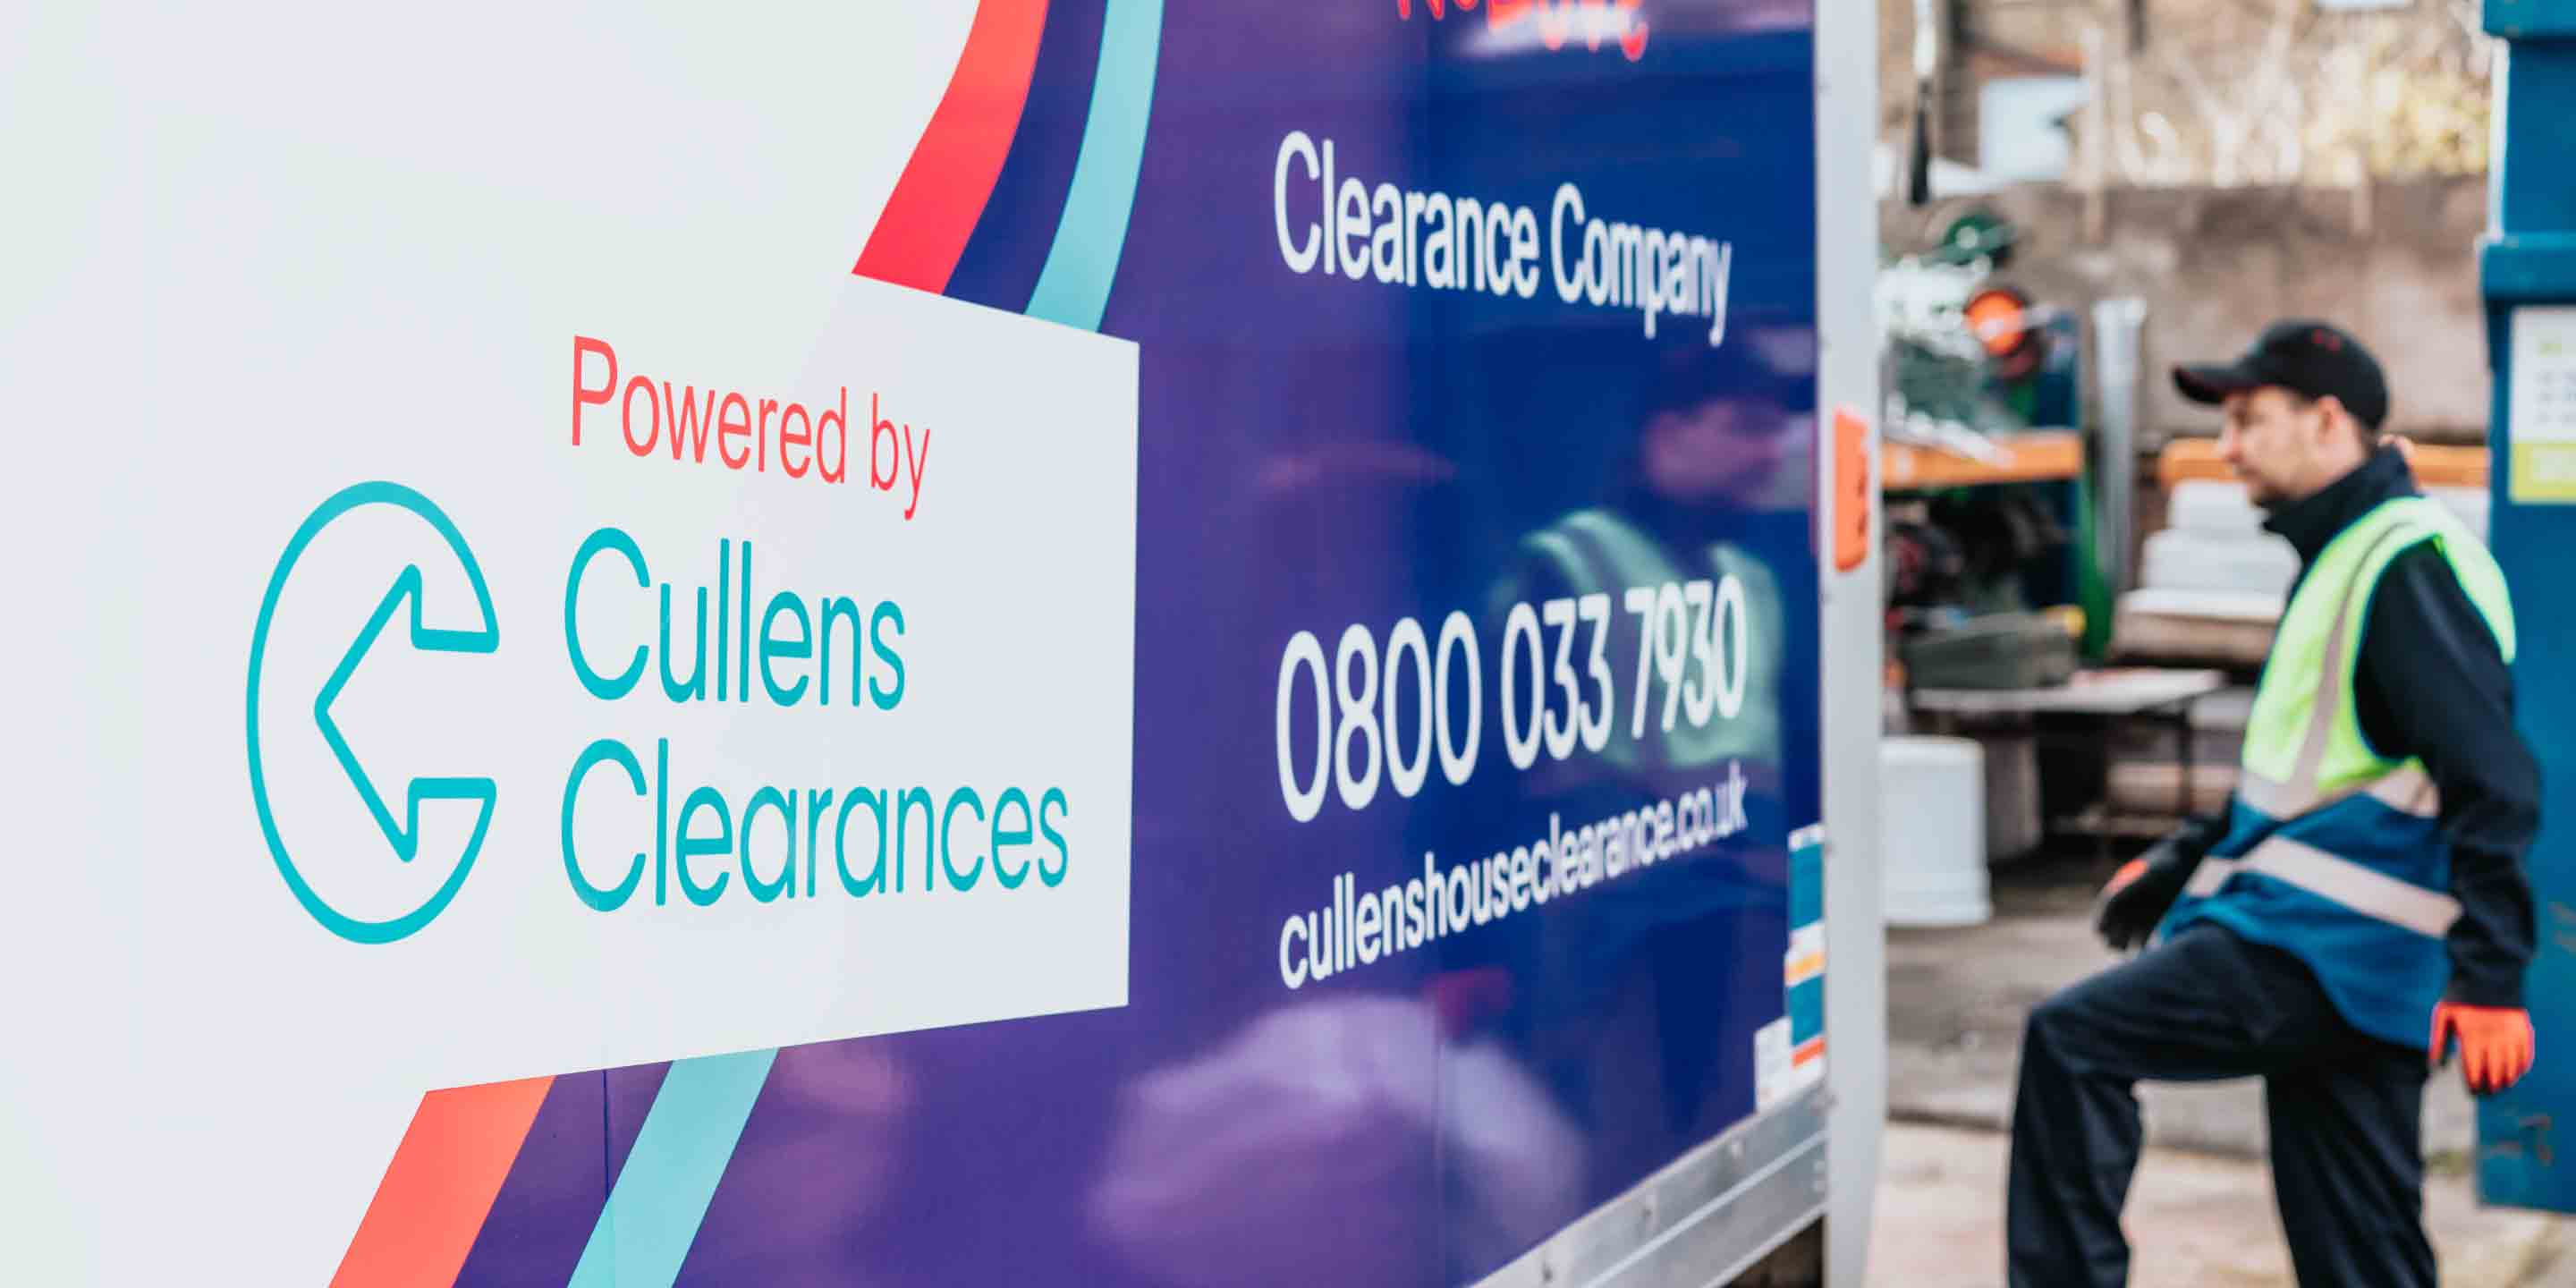 Chessington Office Clearance Company